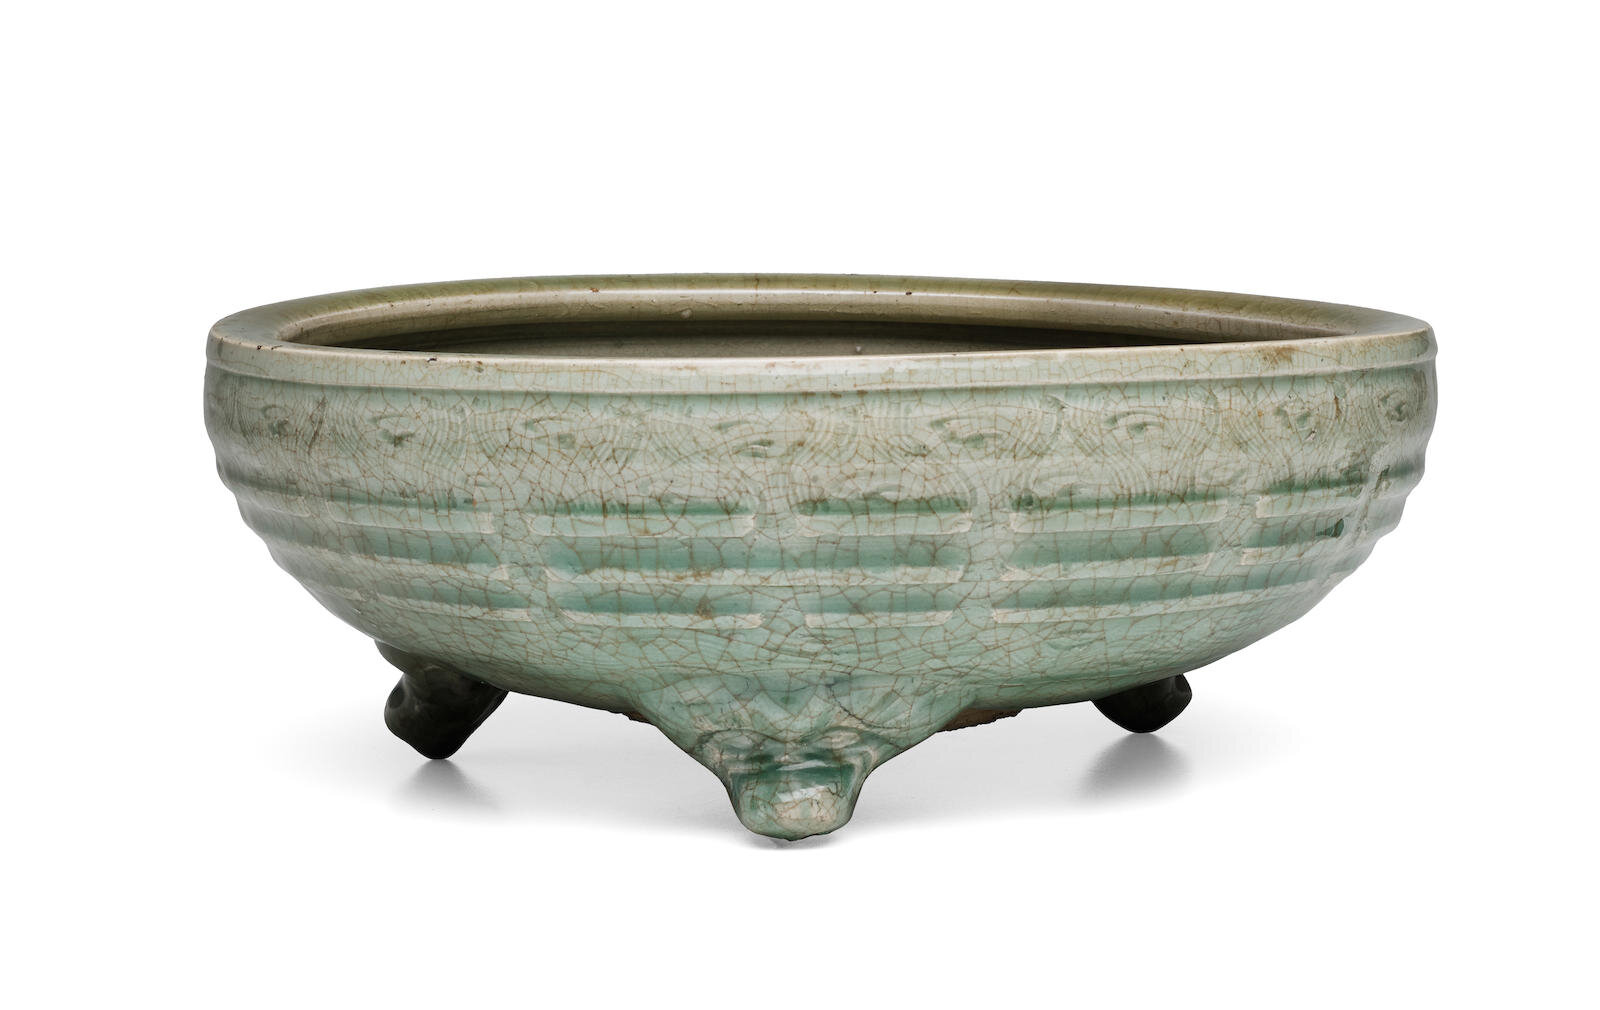 A Longquan celadon 'Eight trigrams' tripod censer, Late Yuan-Early Ming dynasty